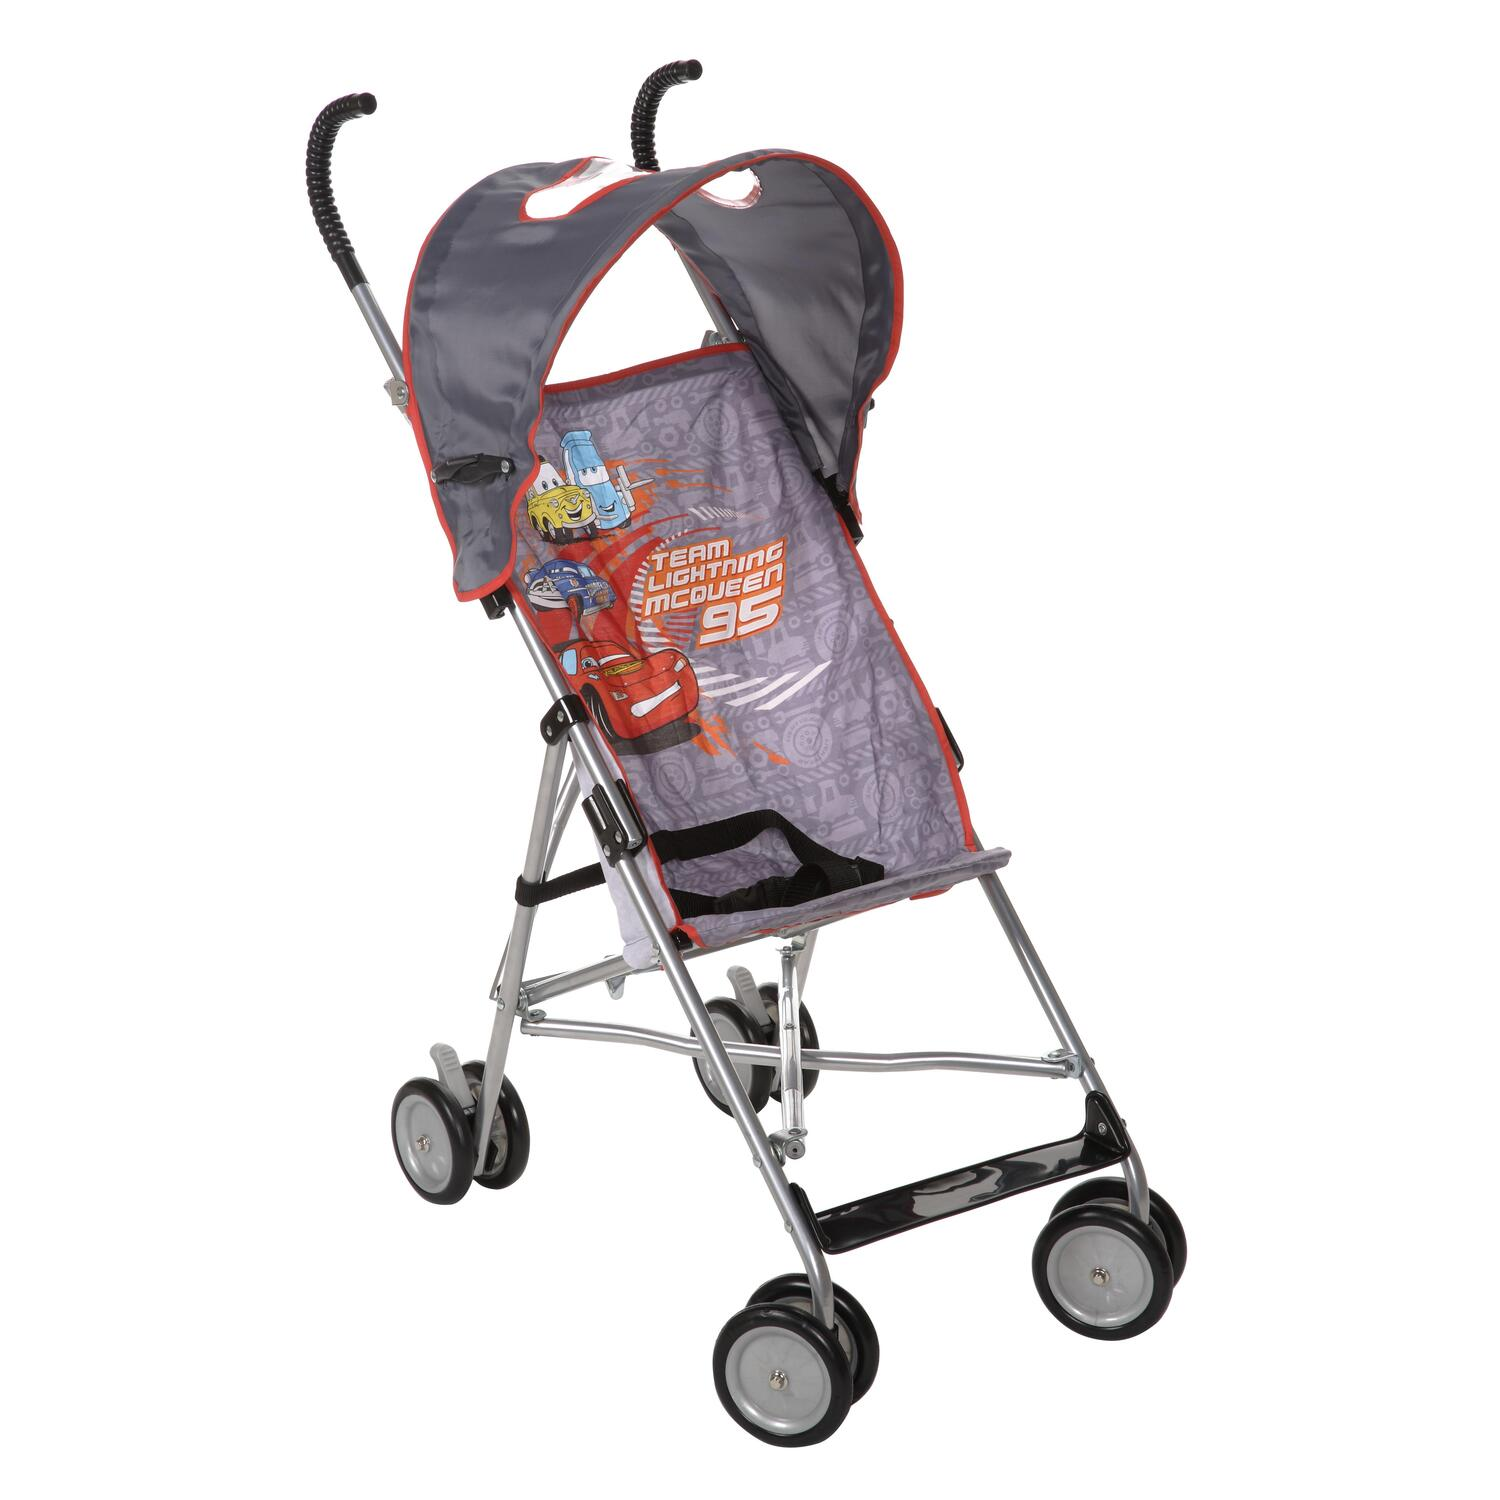 Disney® Umbrella Stroller with Canopy (Cars 2 Team McQueen) - [US032AXG1]  sc 1 st  OJ Commerce & Disney® Umbrella Stroller with Canopy (Cars 2 Team McQueen ...